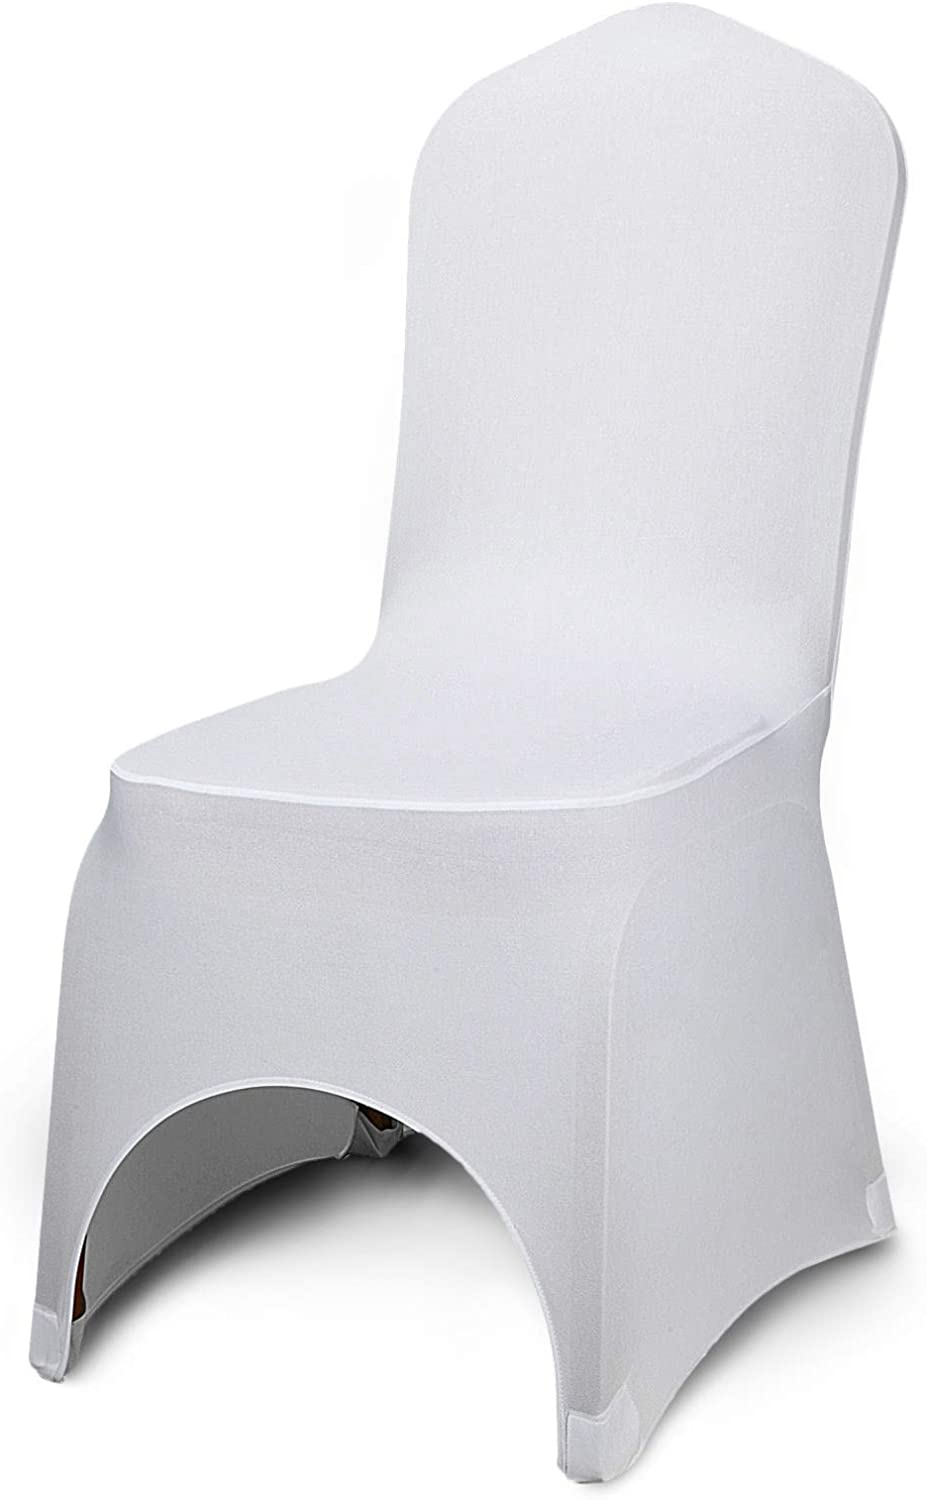 VEVOR 150 PCS White Chair Covers Polyester Spandex Chair Cover Stretch Slipcovers for Wedding Party Dining Banquet Chair Decoration Covers